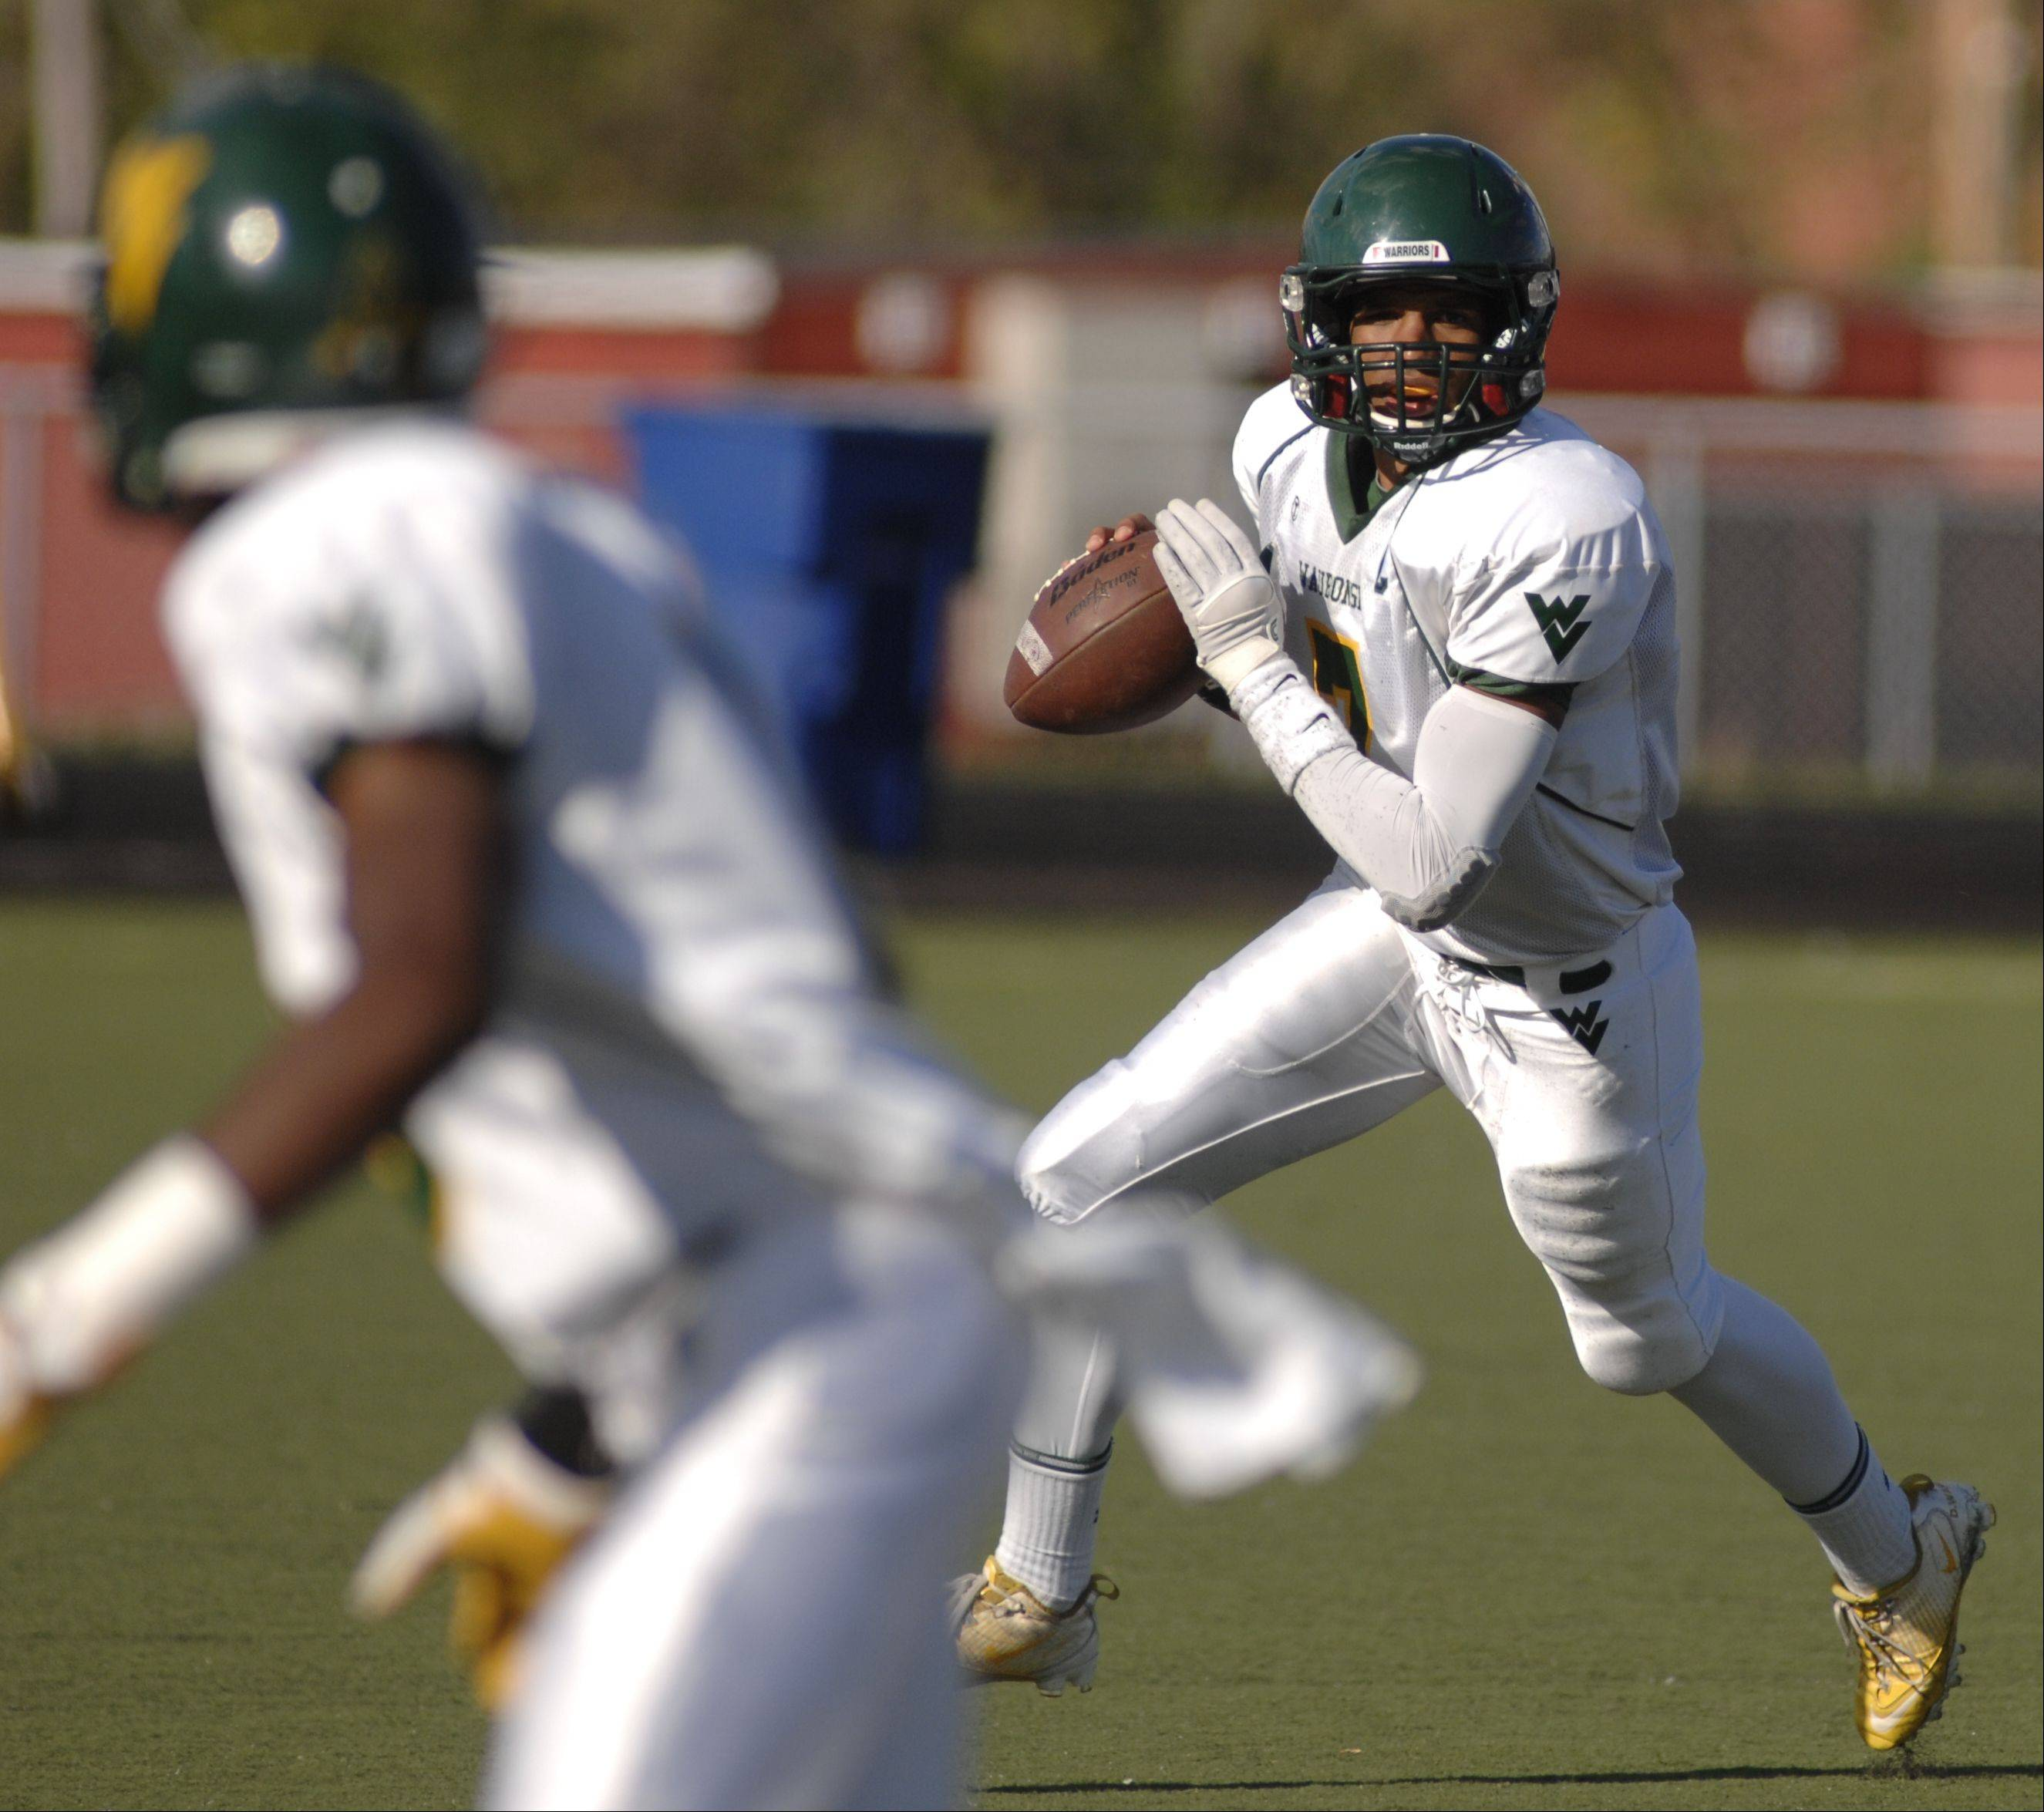 Week Three - Images from the Waubonsie Valley vs. Streamwood football game Saturday, September 8, 2012.